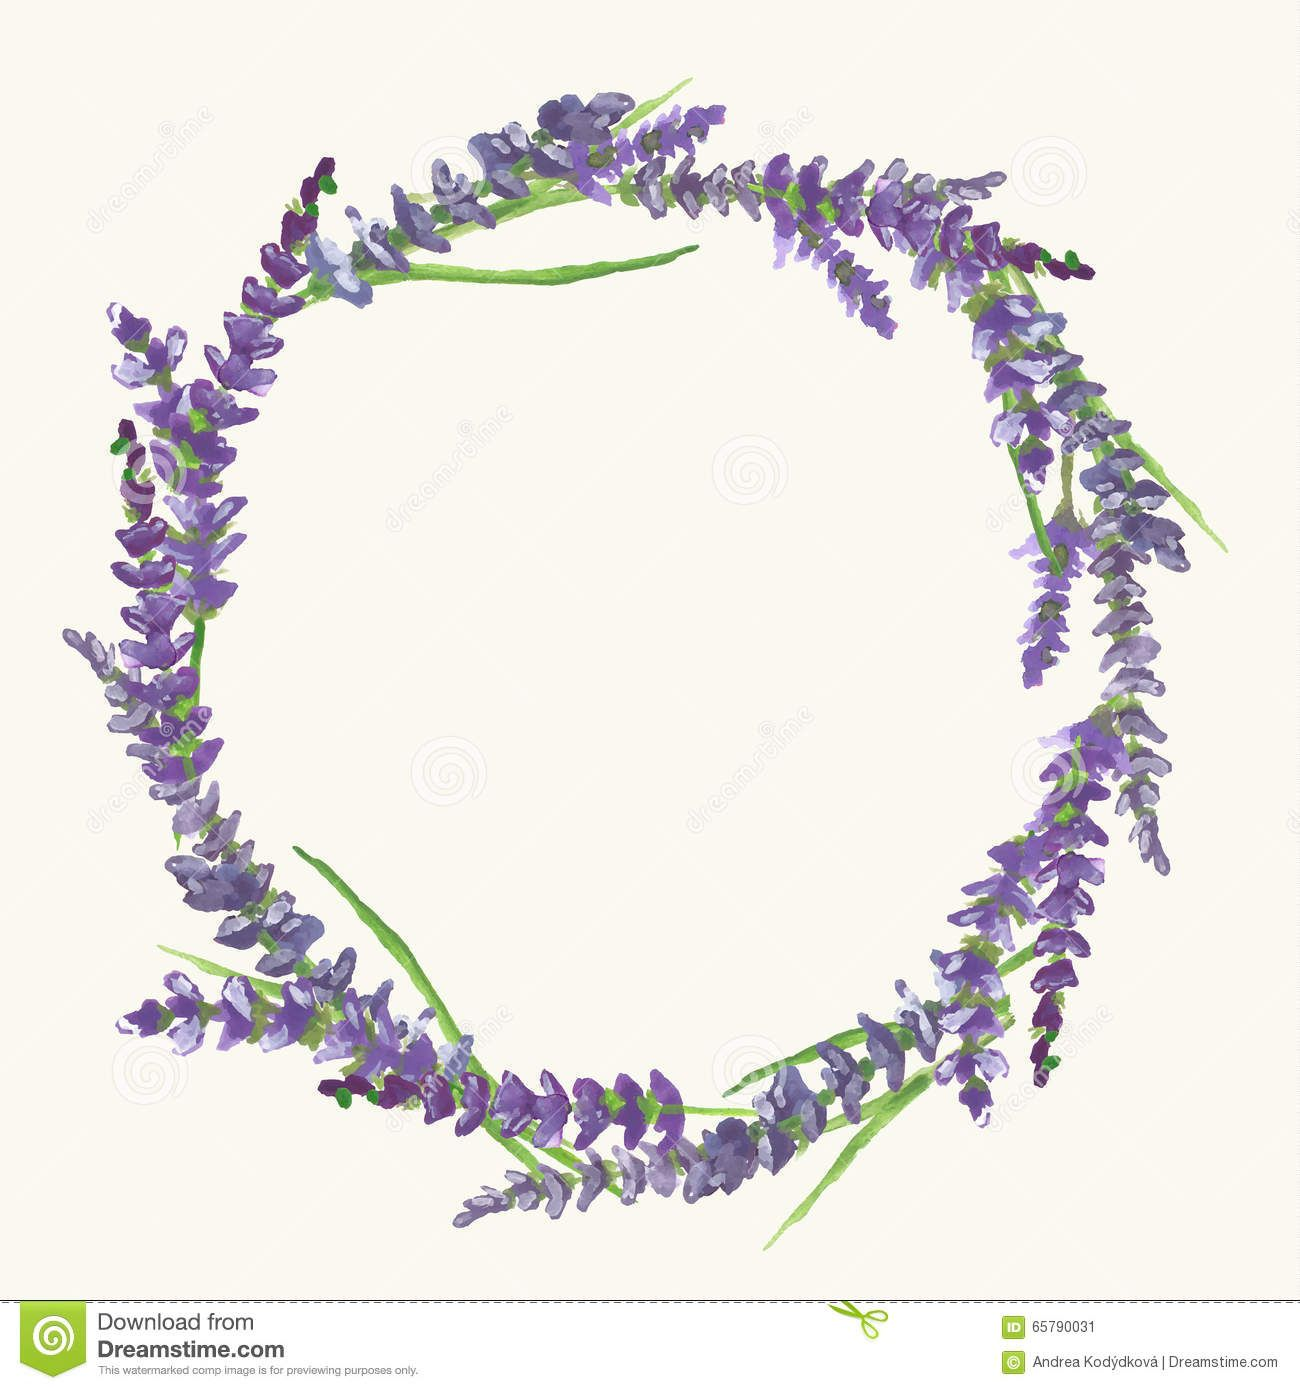 Lavender Wreath Watercolor Painting Illustration Flower Wreath Illustration Wreath Illustration Wreath Watercolor